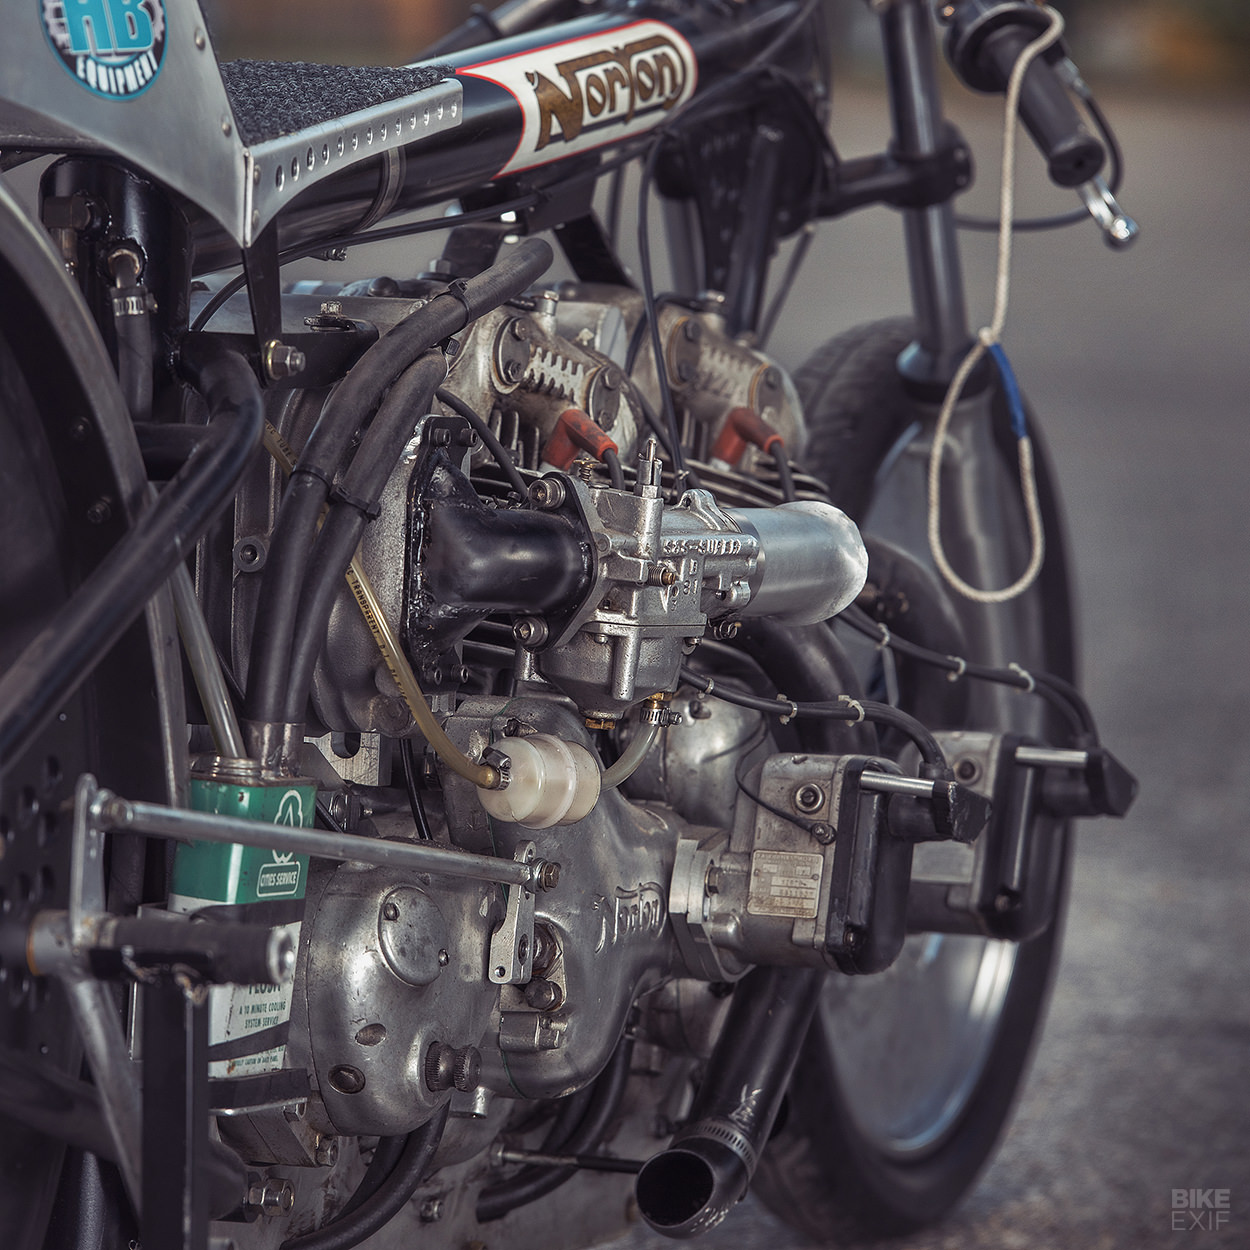 Supercharged twin-engine Norton drag bike by Herb Becker